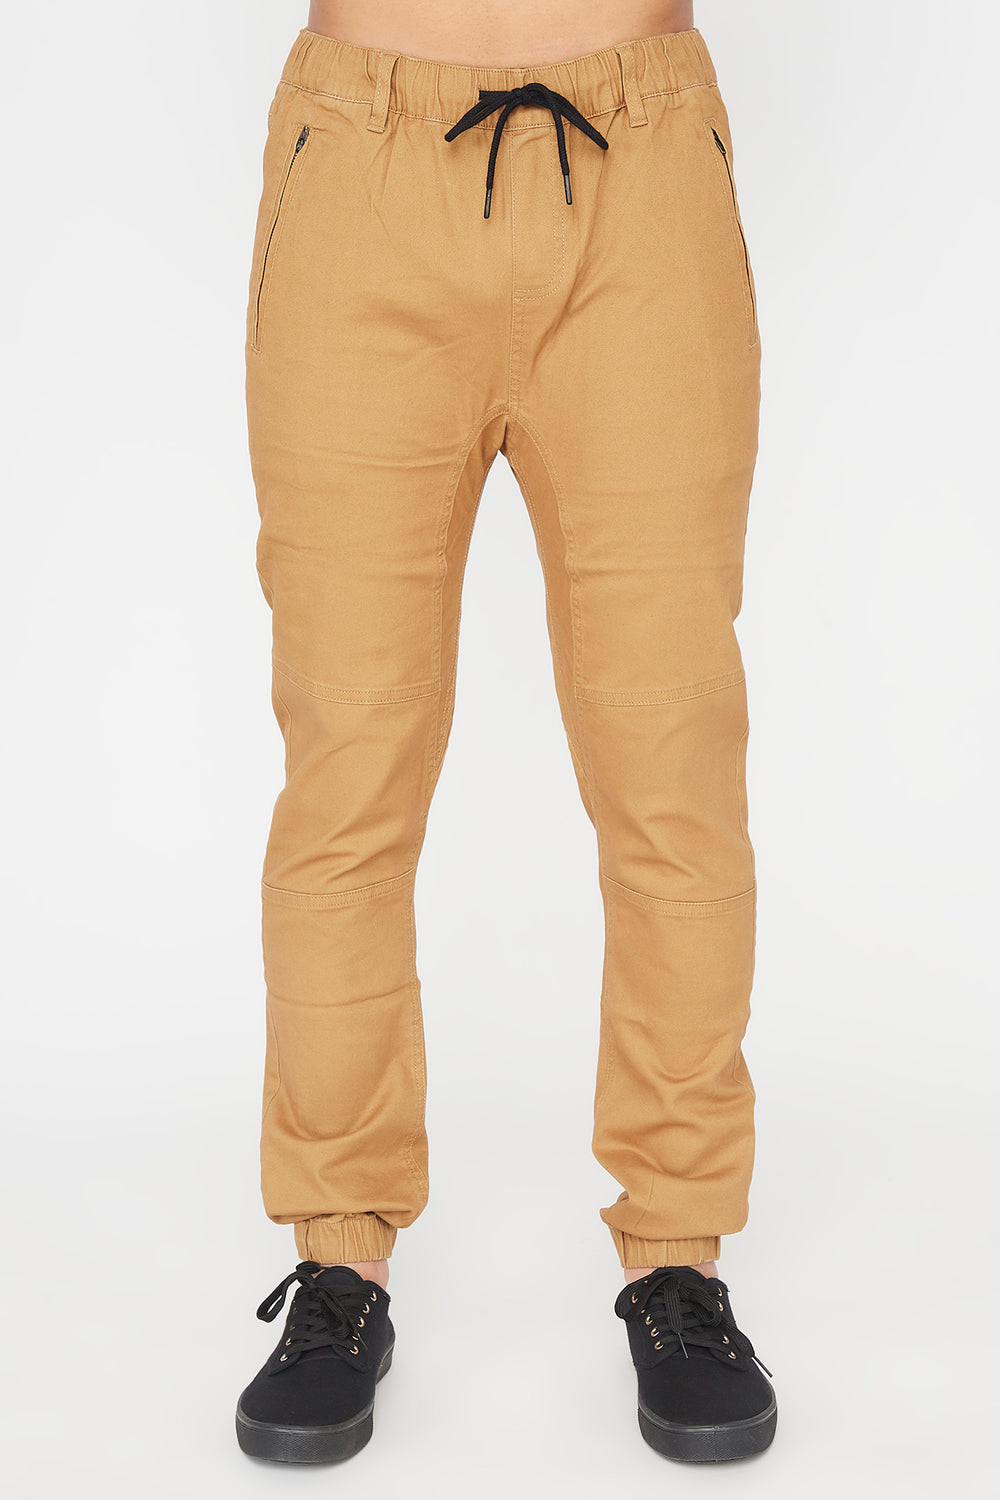 Zoo York Mens Solid Zip Jogger Copper